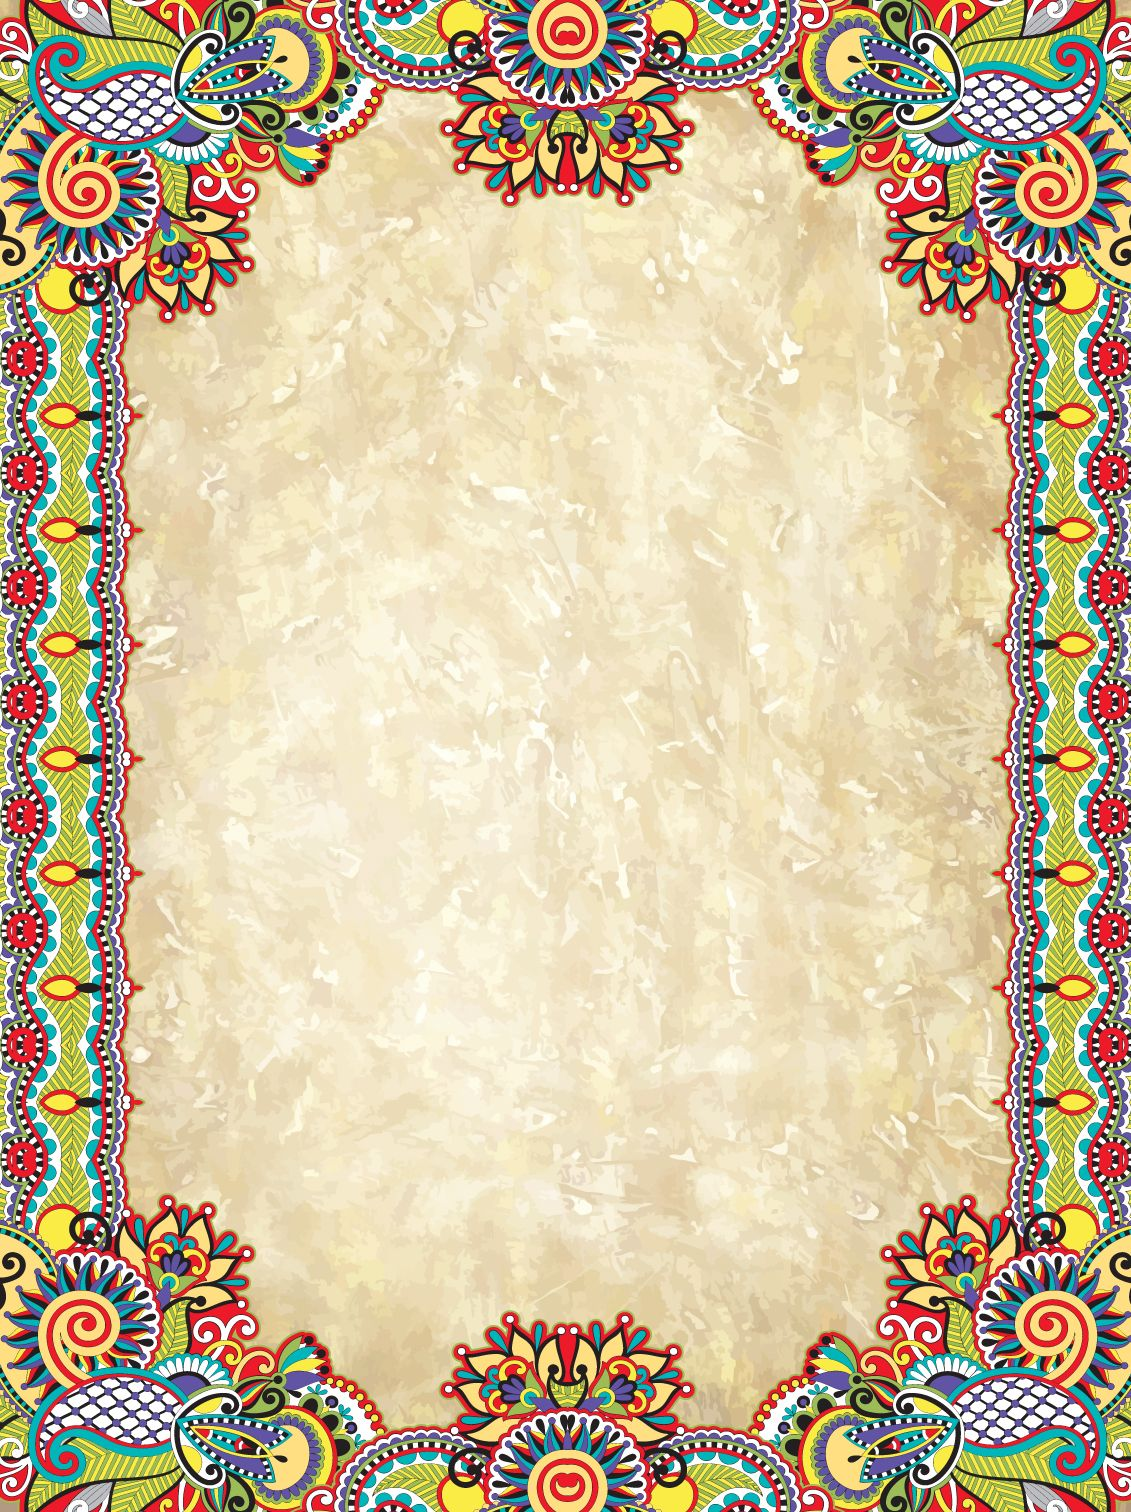 Free vector Retro pattern border vector graphic available ...